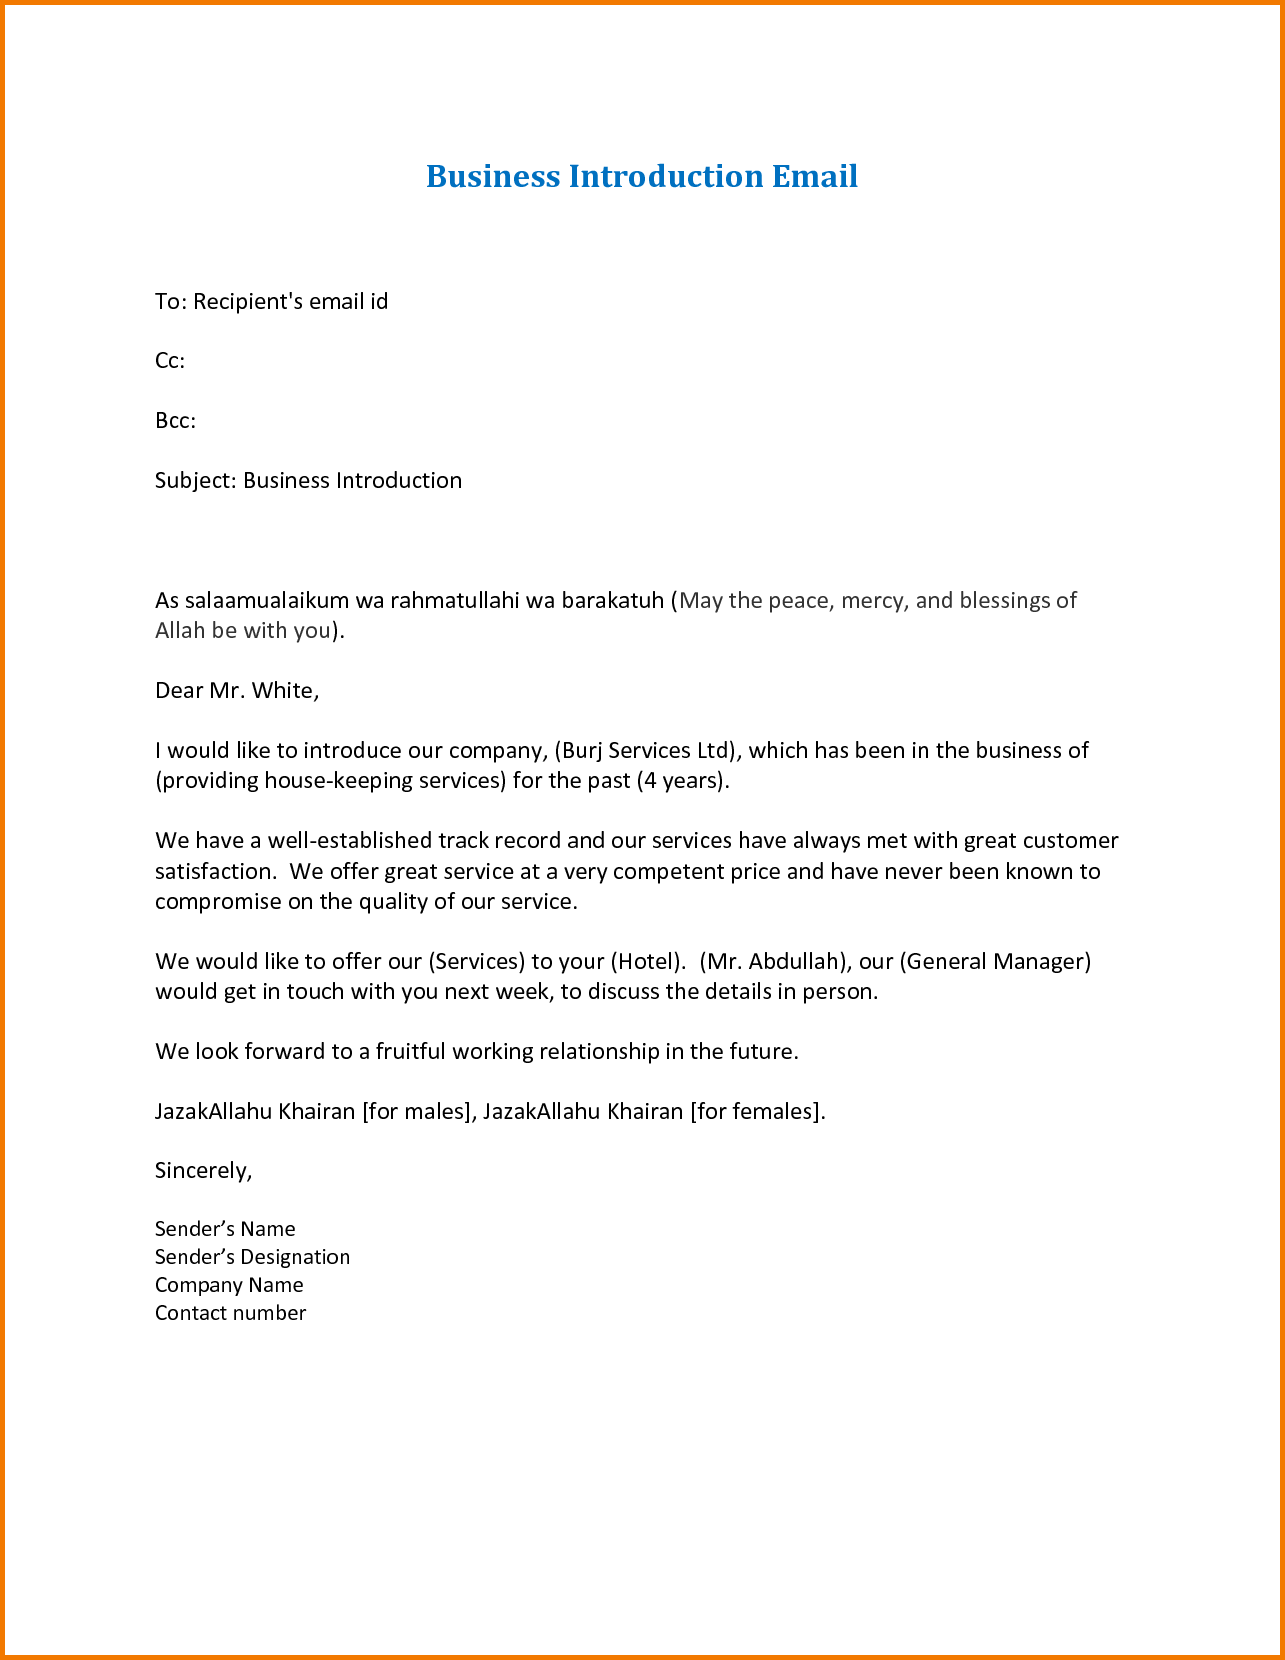 Company introduction email template letter civil contractor formal company introduction email template letter civil contractor formal format accmission